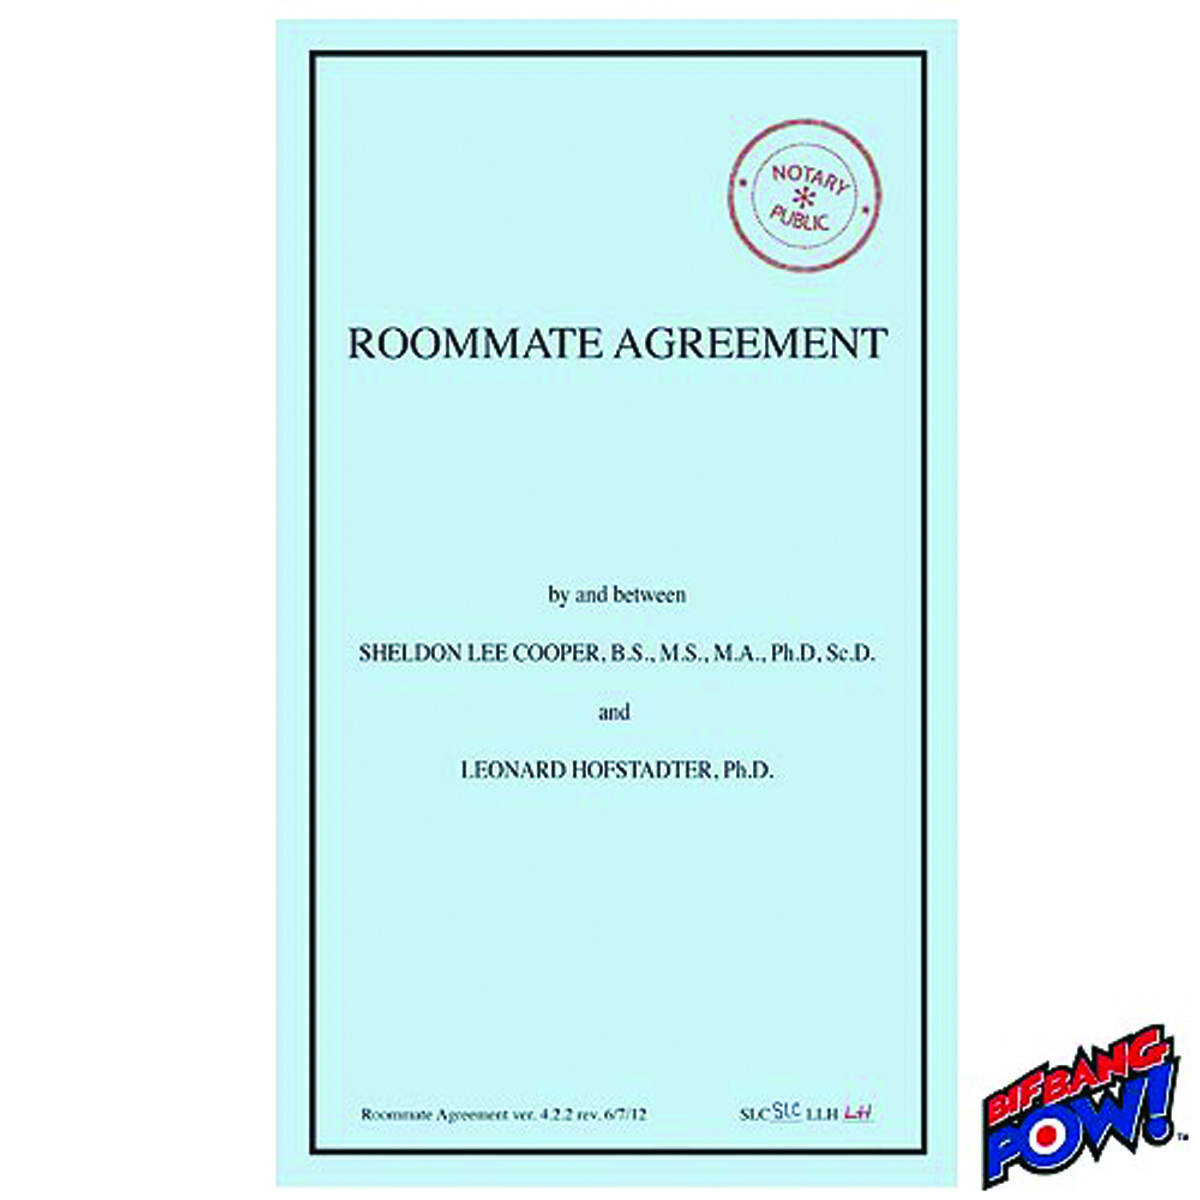 SEP BIG BANG THEORY ROOMMATE AGREEMENT JOURNAL